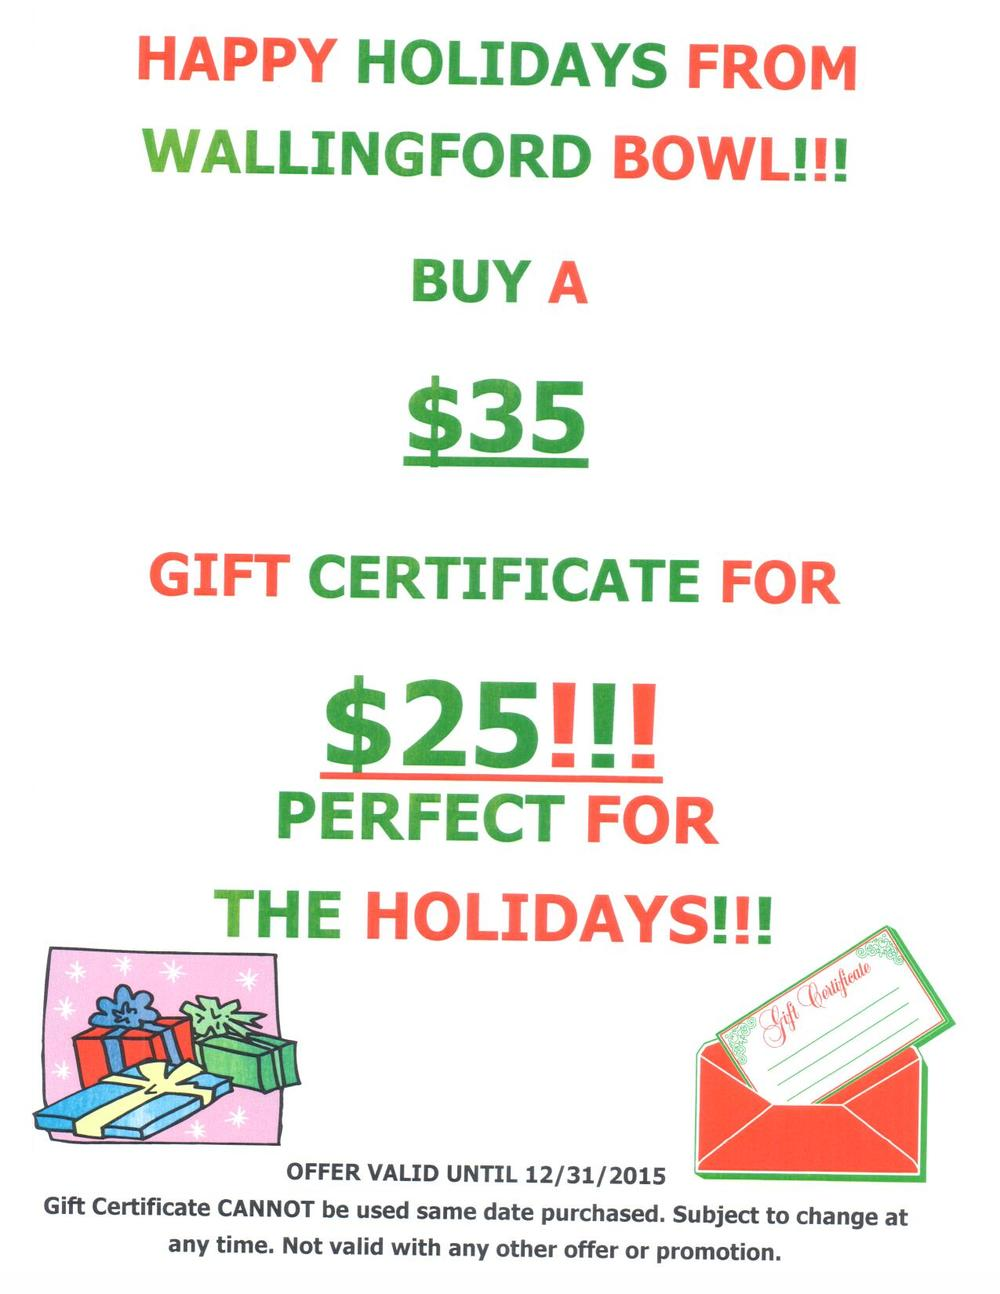 Holiday special! Get yours before the end of the new year!